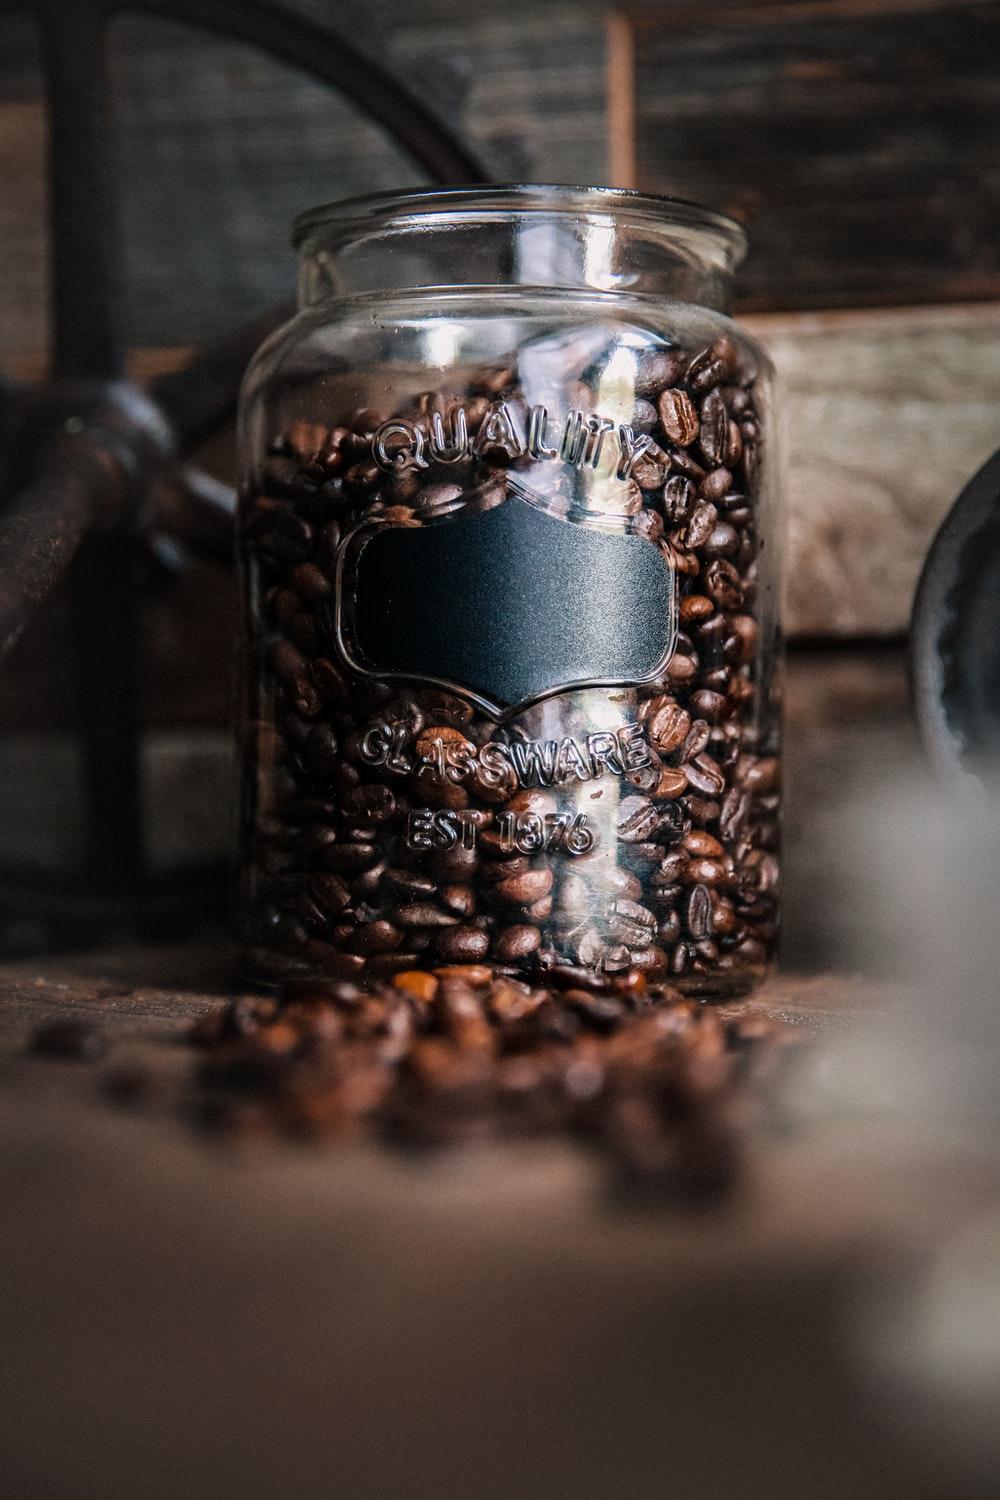 brown and black coffee beans in clear glass mug